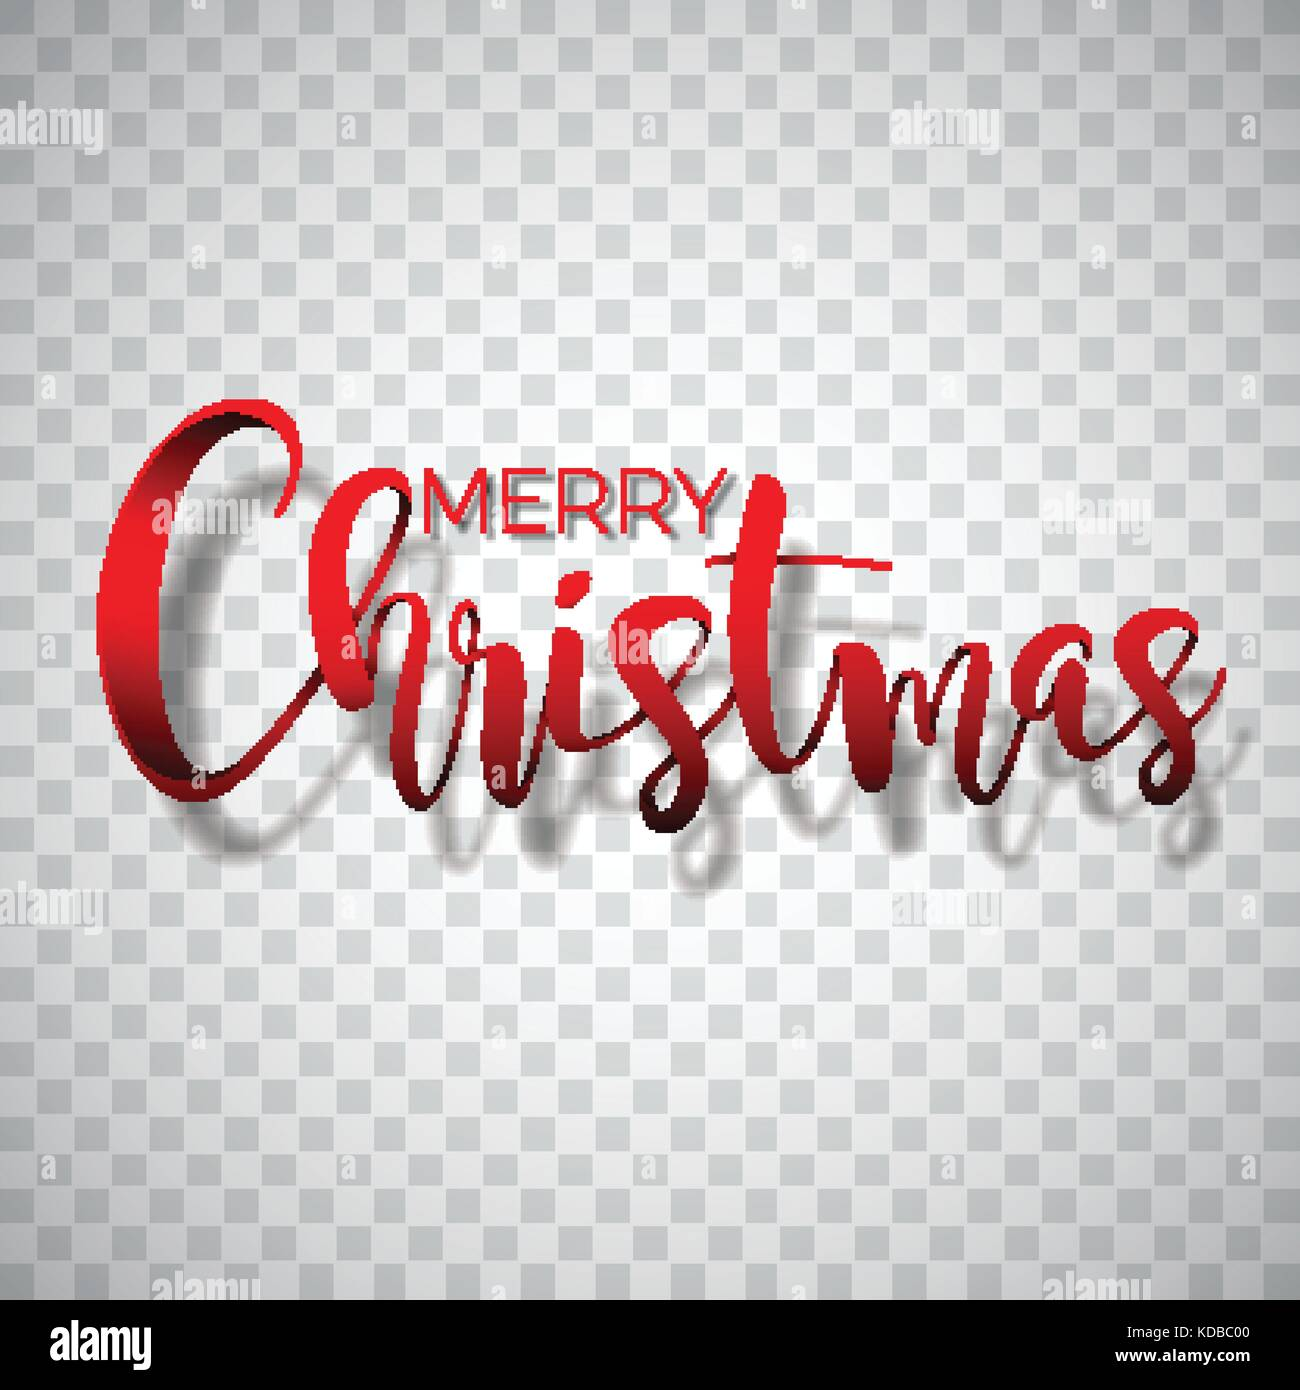 Merry Christmas Typography illustration on a transparent background ...